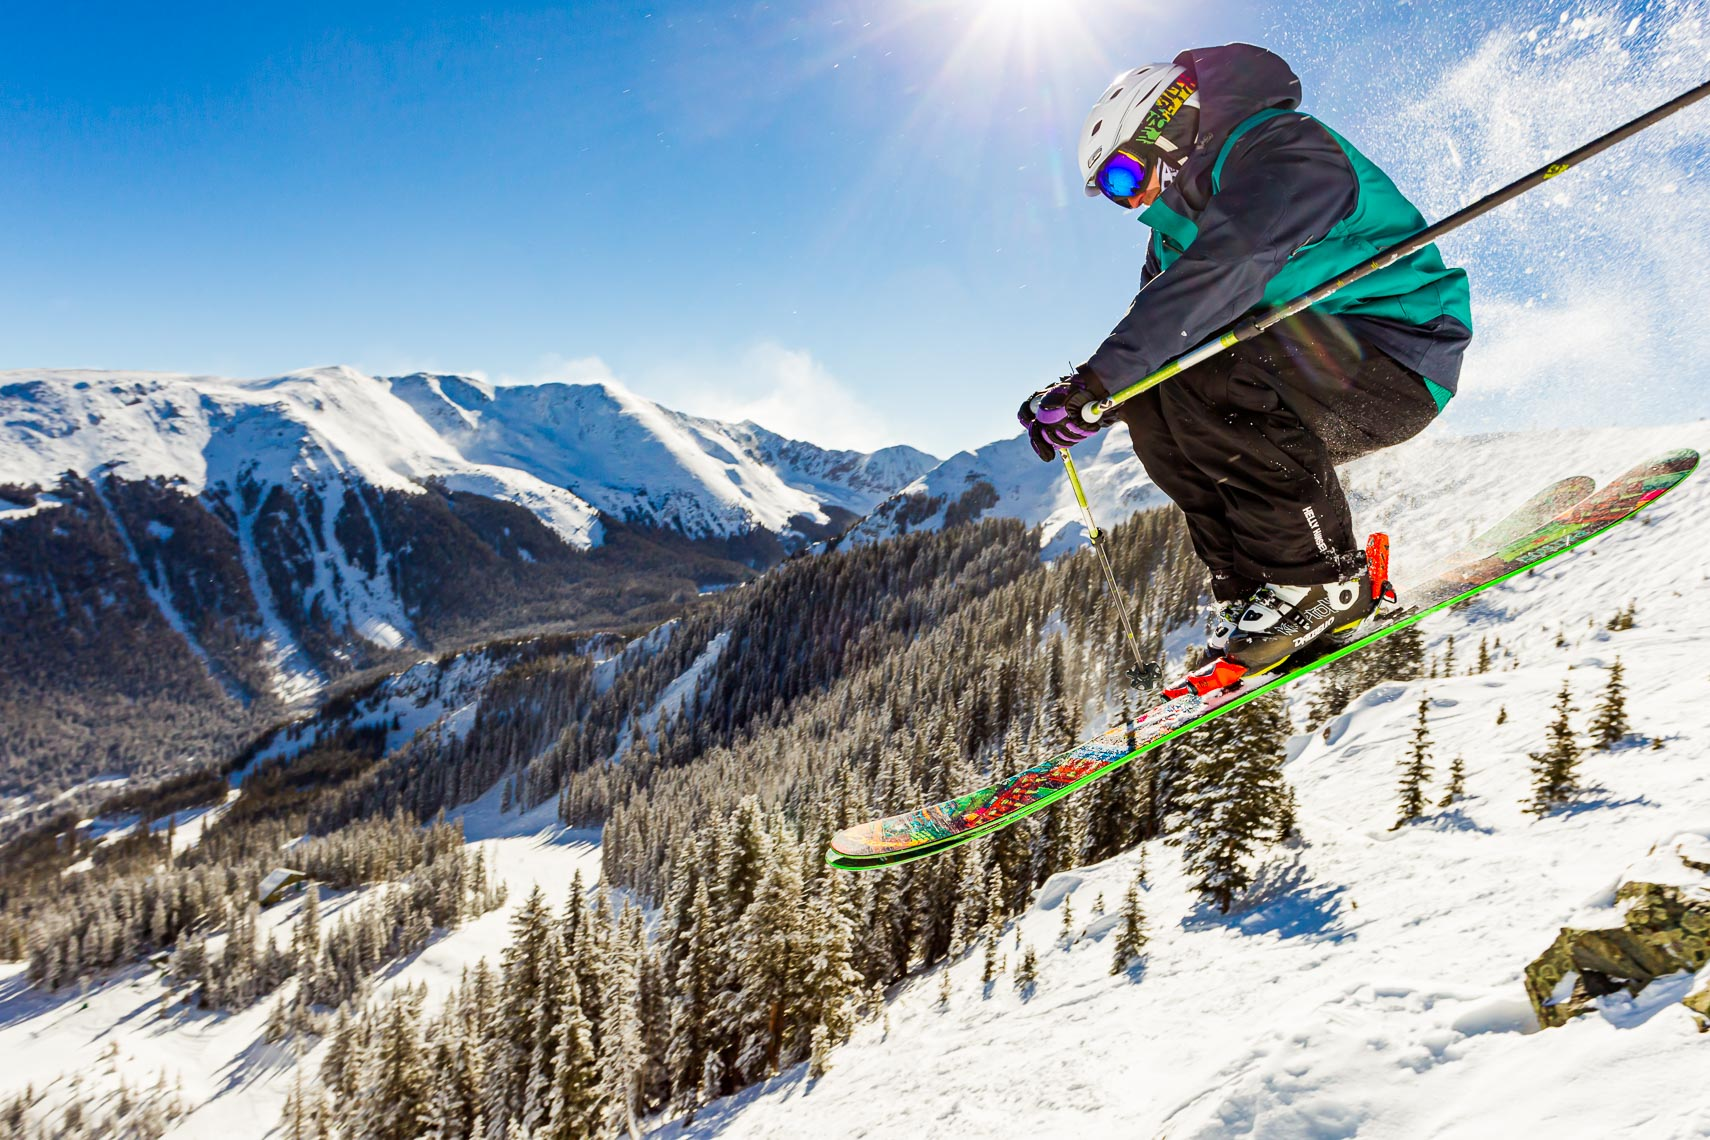 New Mexico Skier | Photographer Michael DeYoung